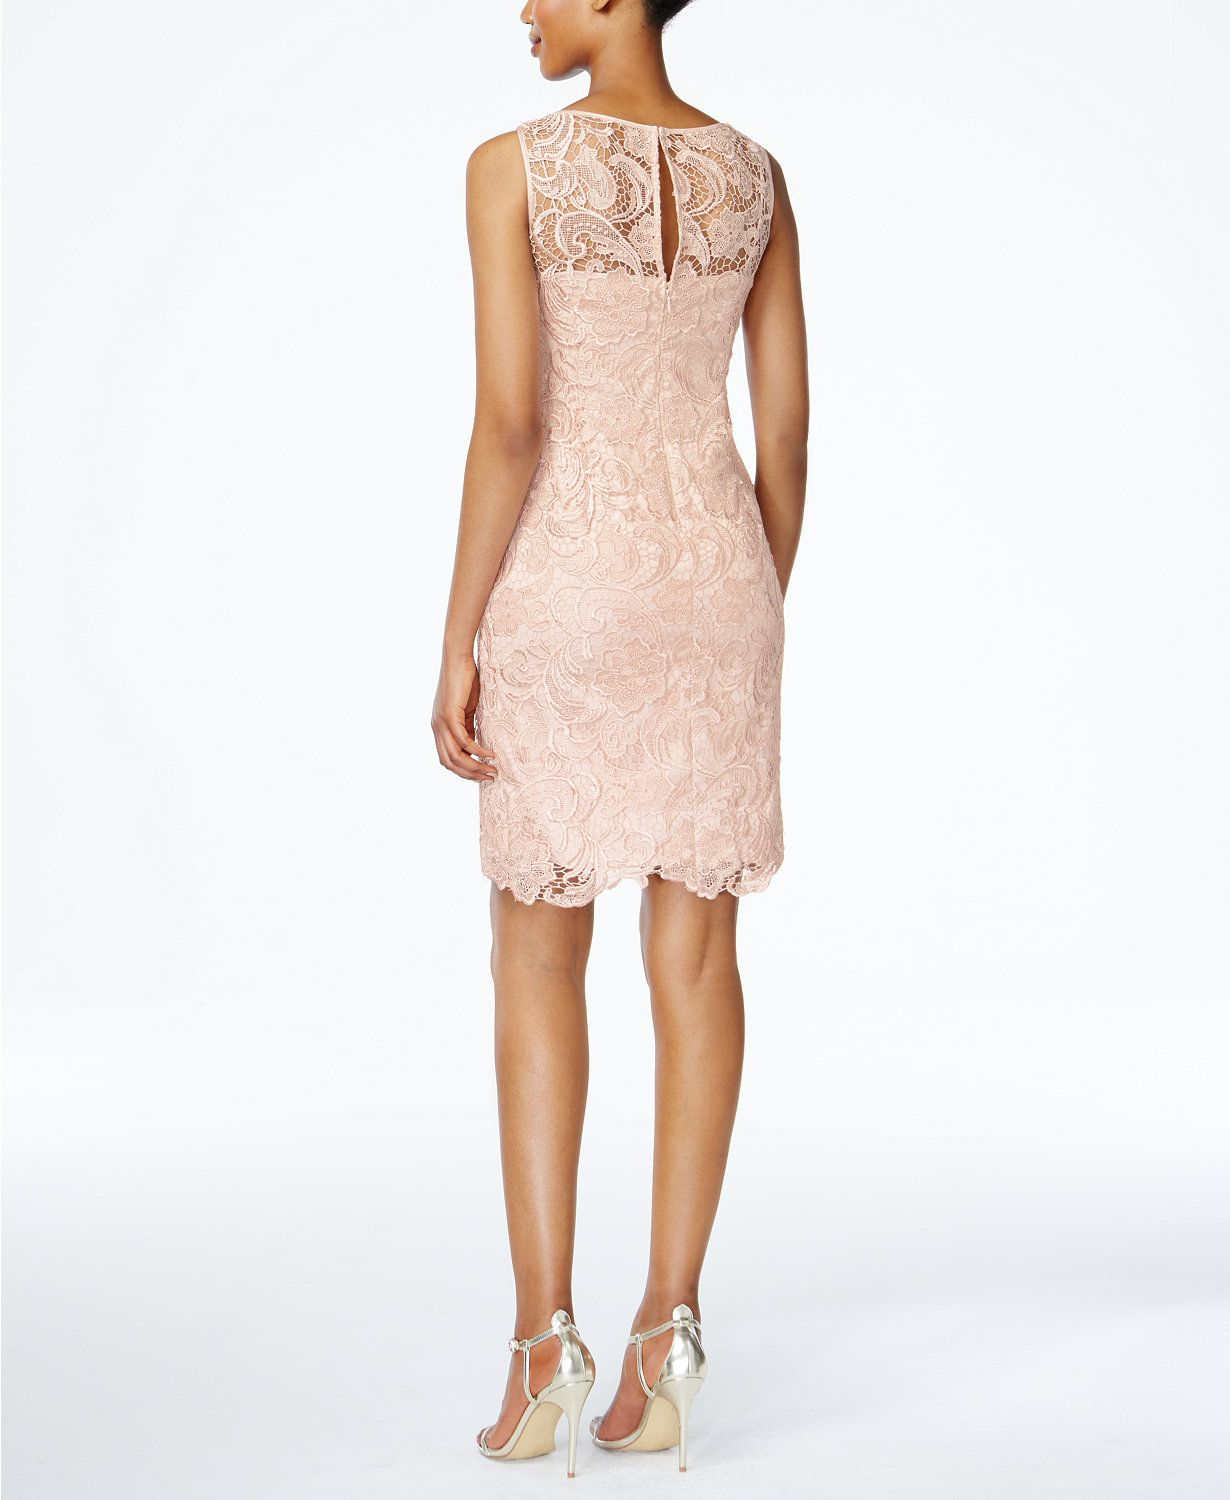 Adrianna Papell Lace Sheath Dress | macys.com | Dress | Pinterest